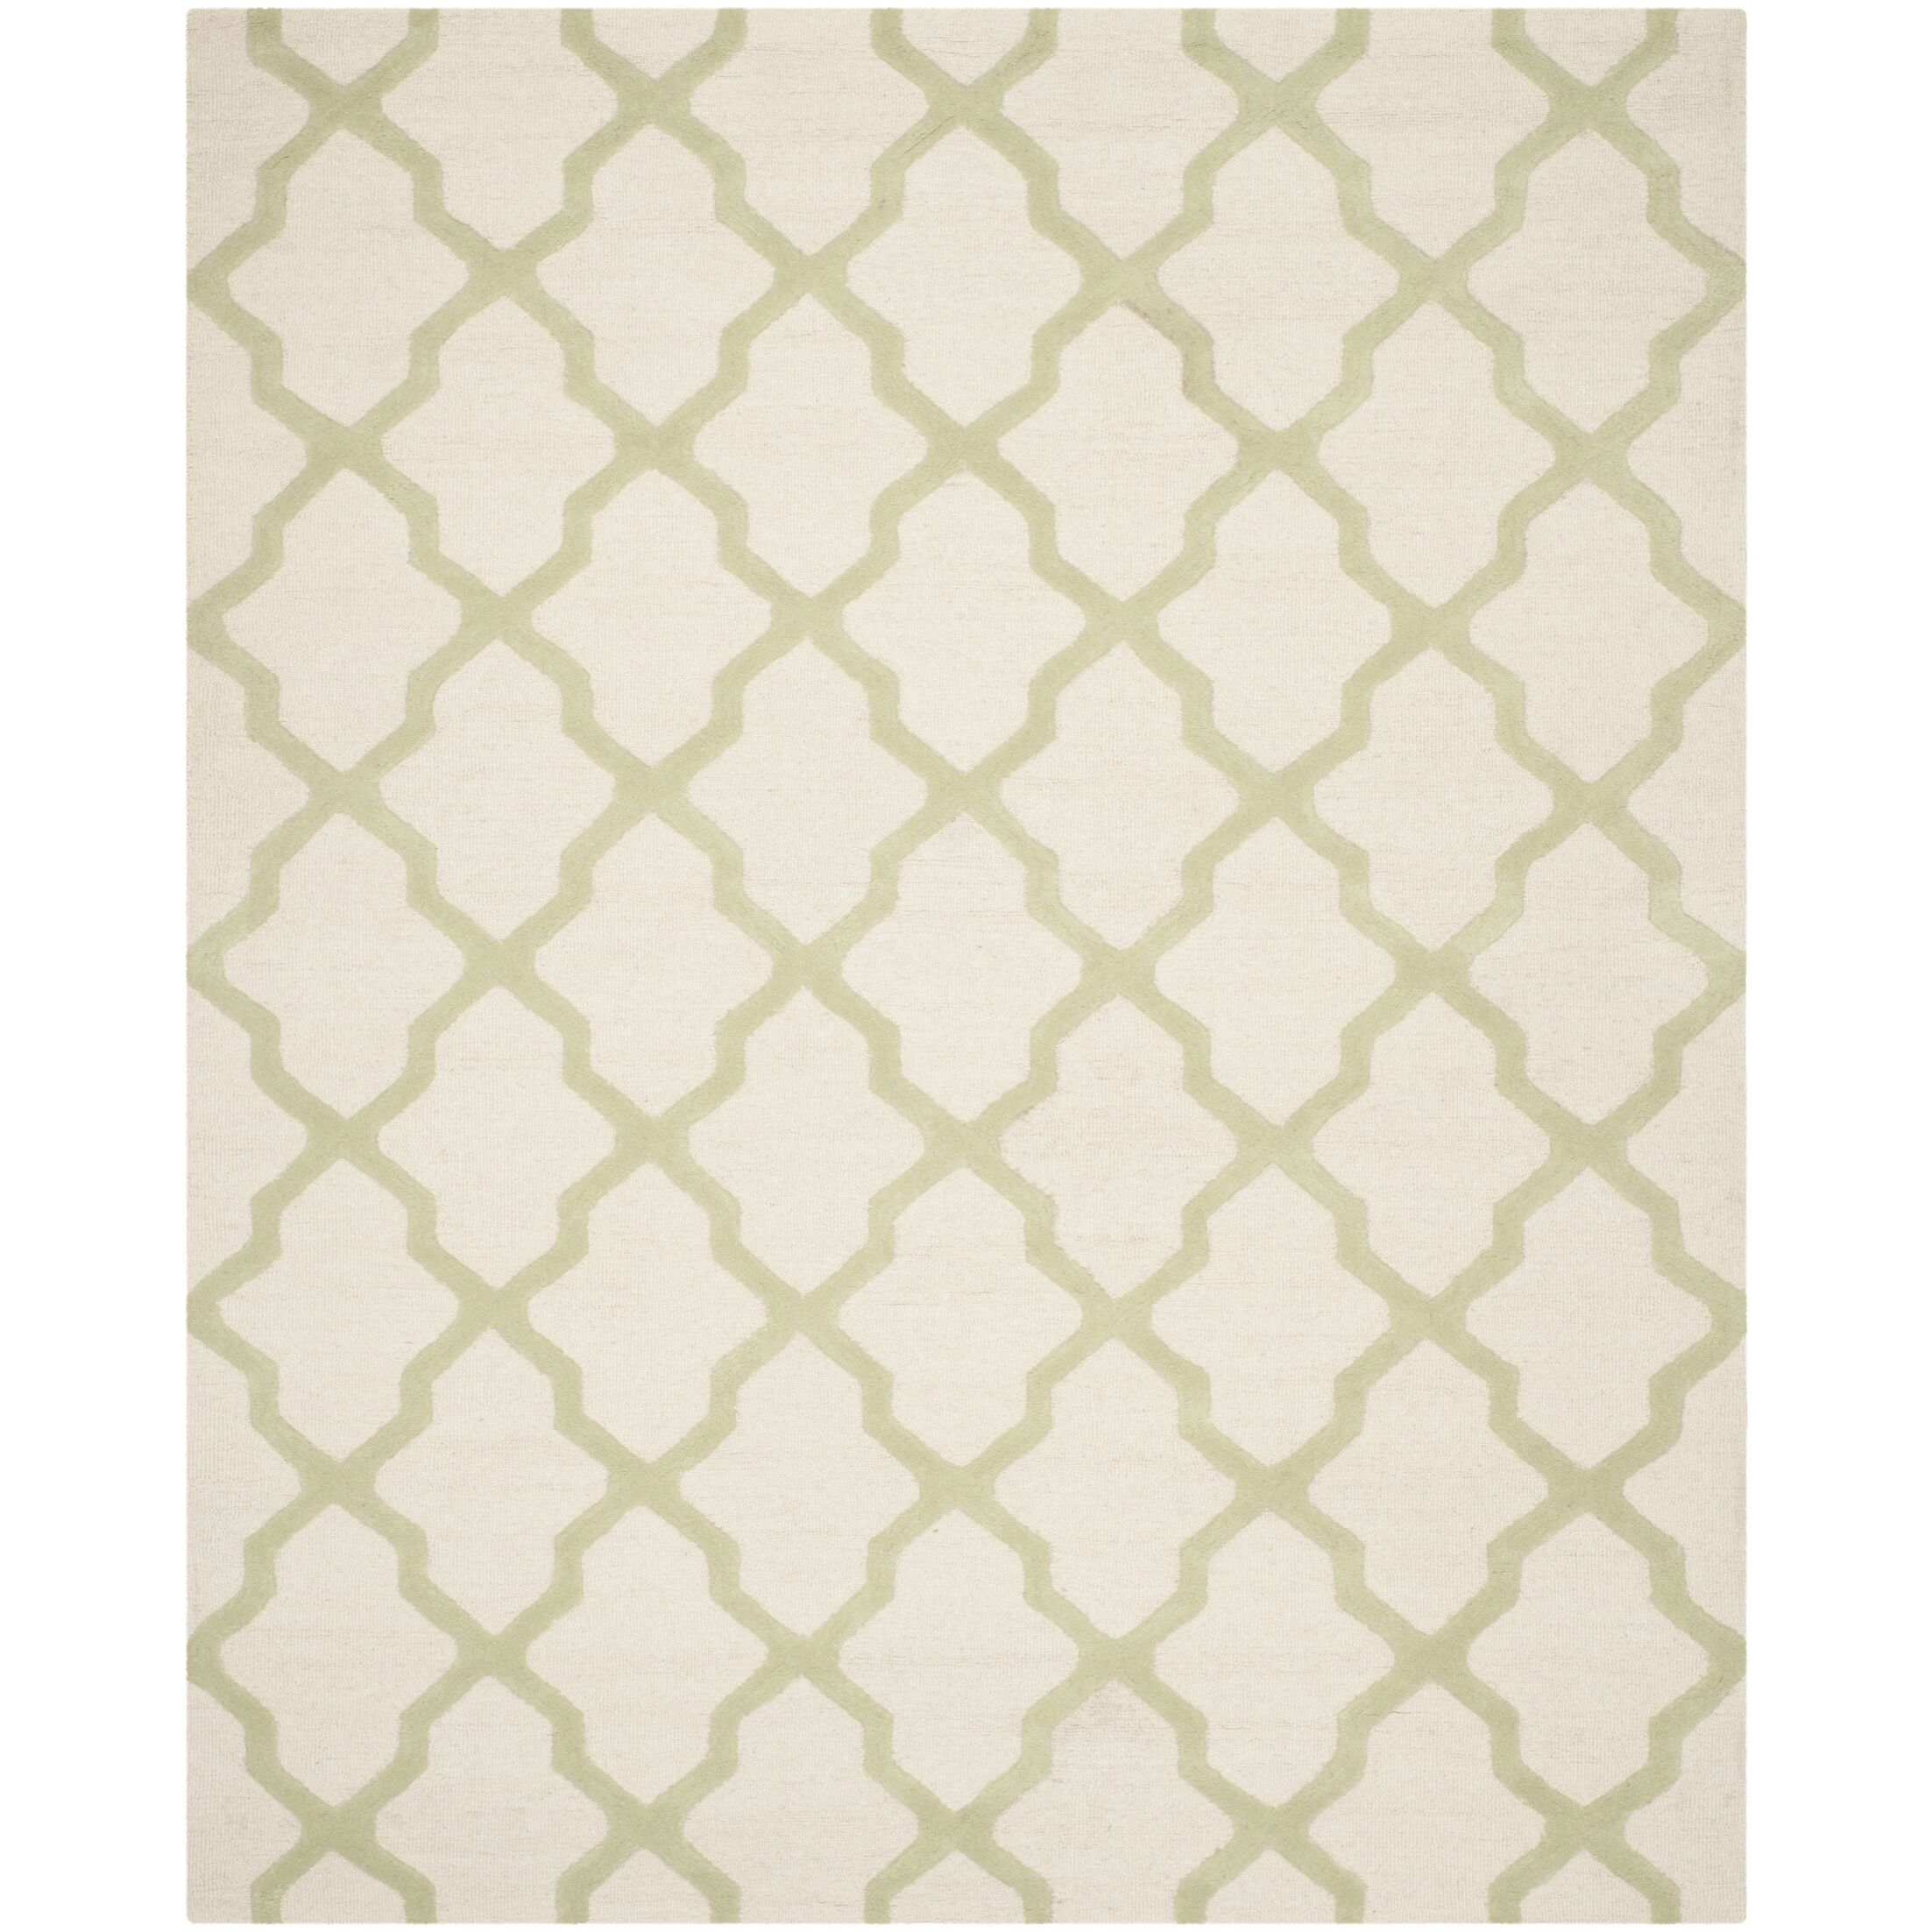 Gillam Hand-Tufted Ivory / Light Green Area Rug Rug Size: Rectangle 8' x 10'